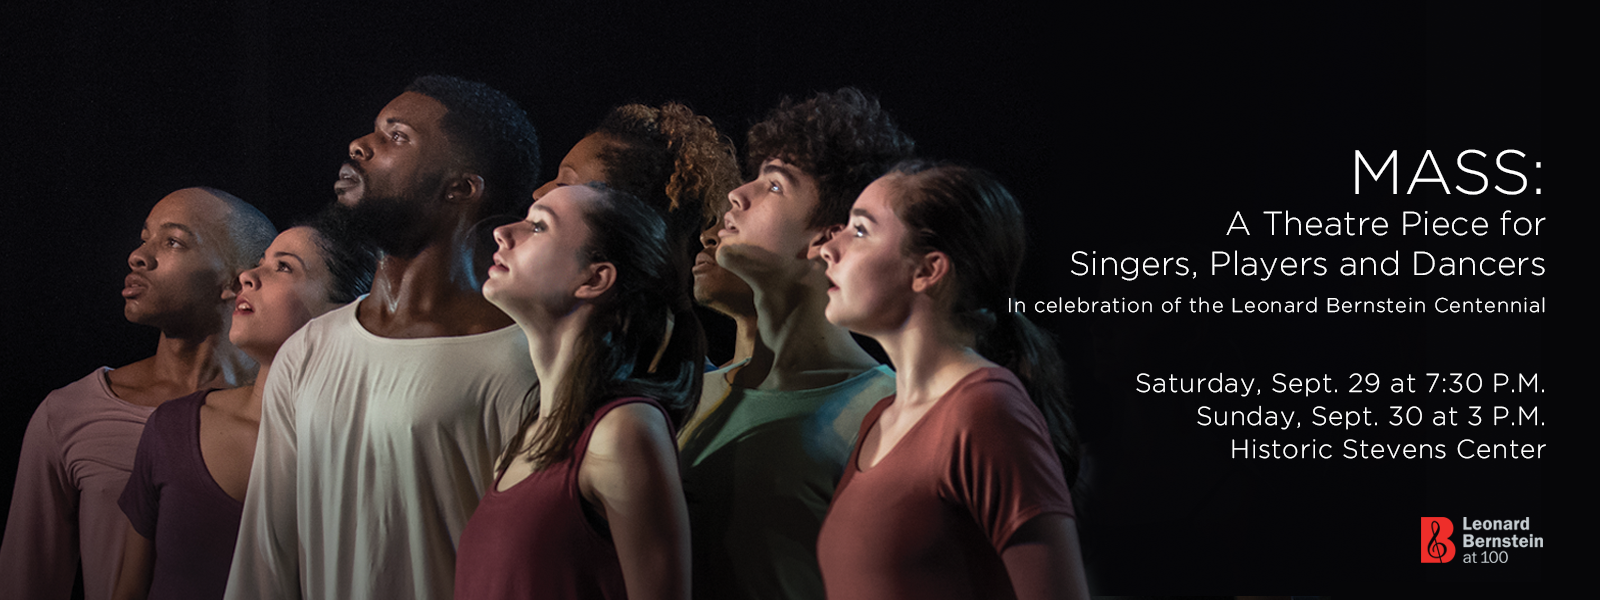 A meditation on the meaning of faith featuring the schools of Music, Dance and Drama >> BUY TICKETS